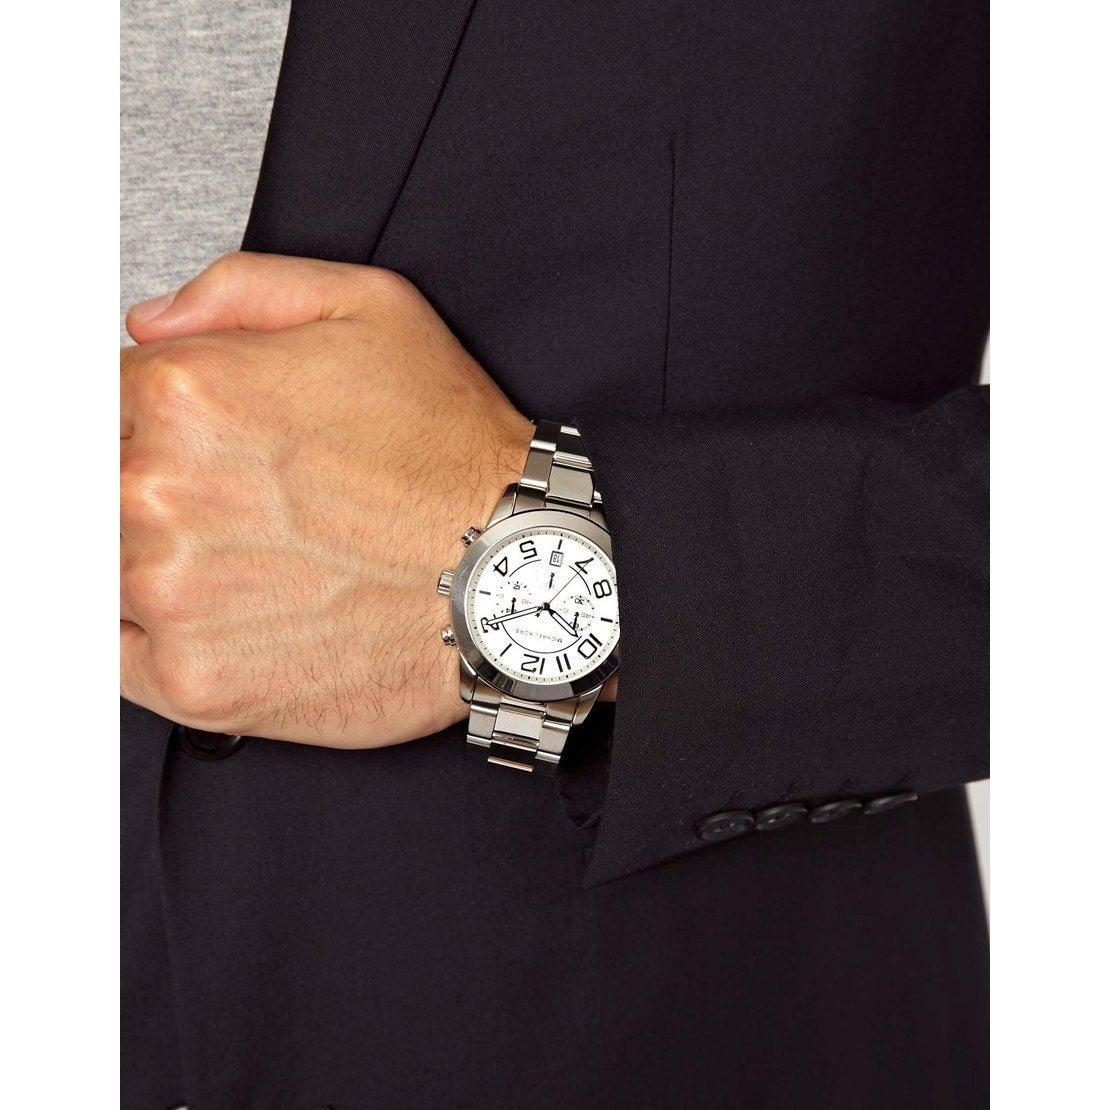 e94d543cdc89 Shop Michael Kors Men s MK8290 Silvertone Stainless Steel Analog Quartz  Watch with Silvertone Dial - Free Shipping Today - Overstock - 9183511